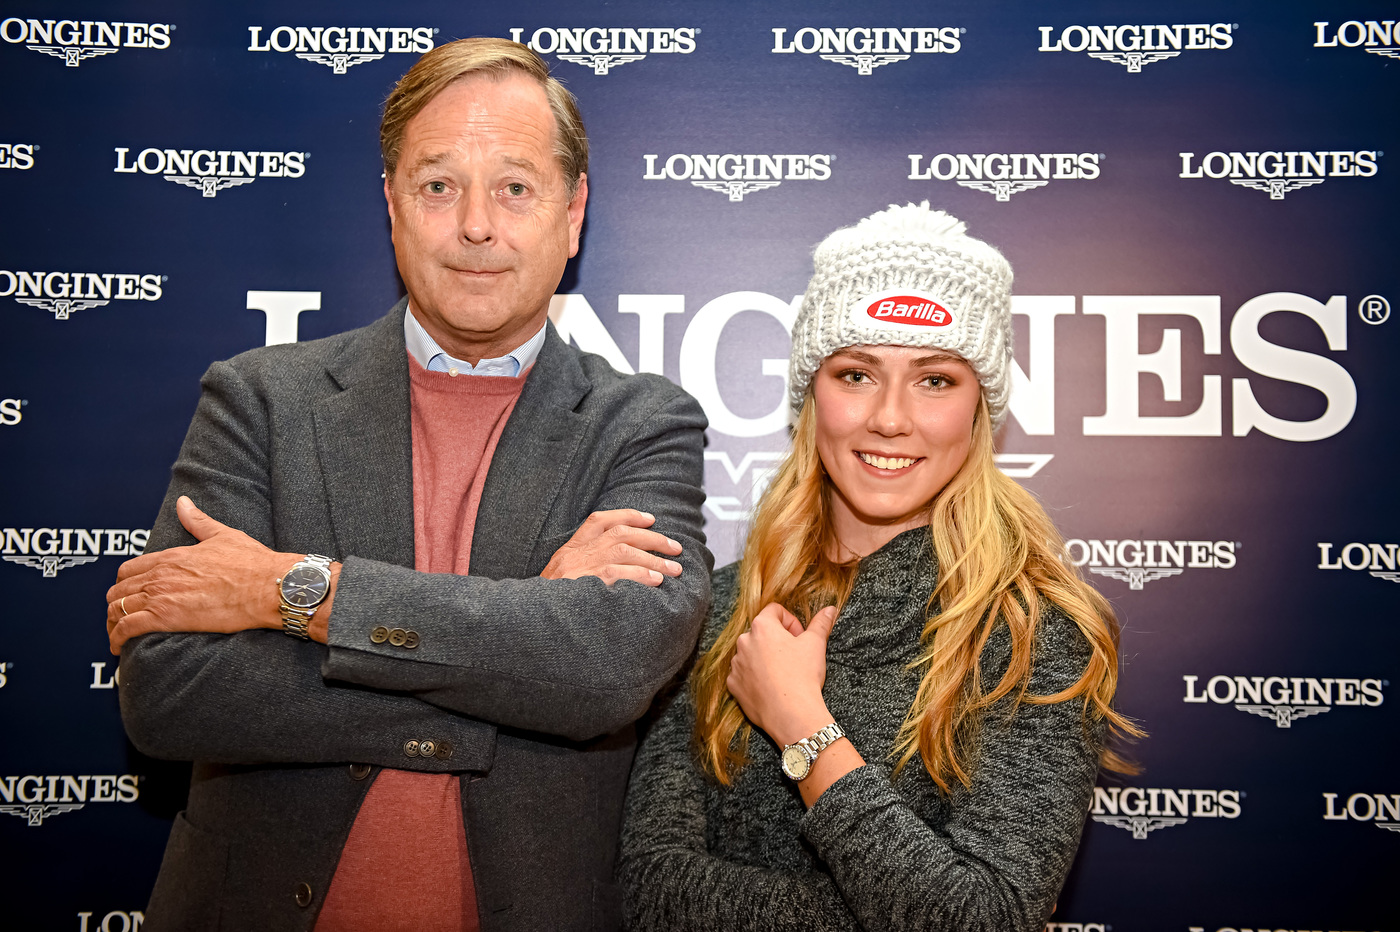 Longines Alpine Skiing Event: Longines' precision to serve the FIS World Cup with the new Conquest V.H.P. model 2